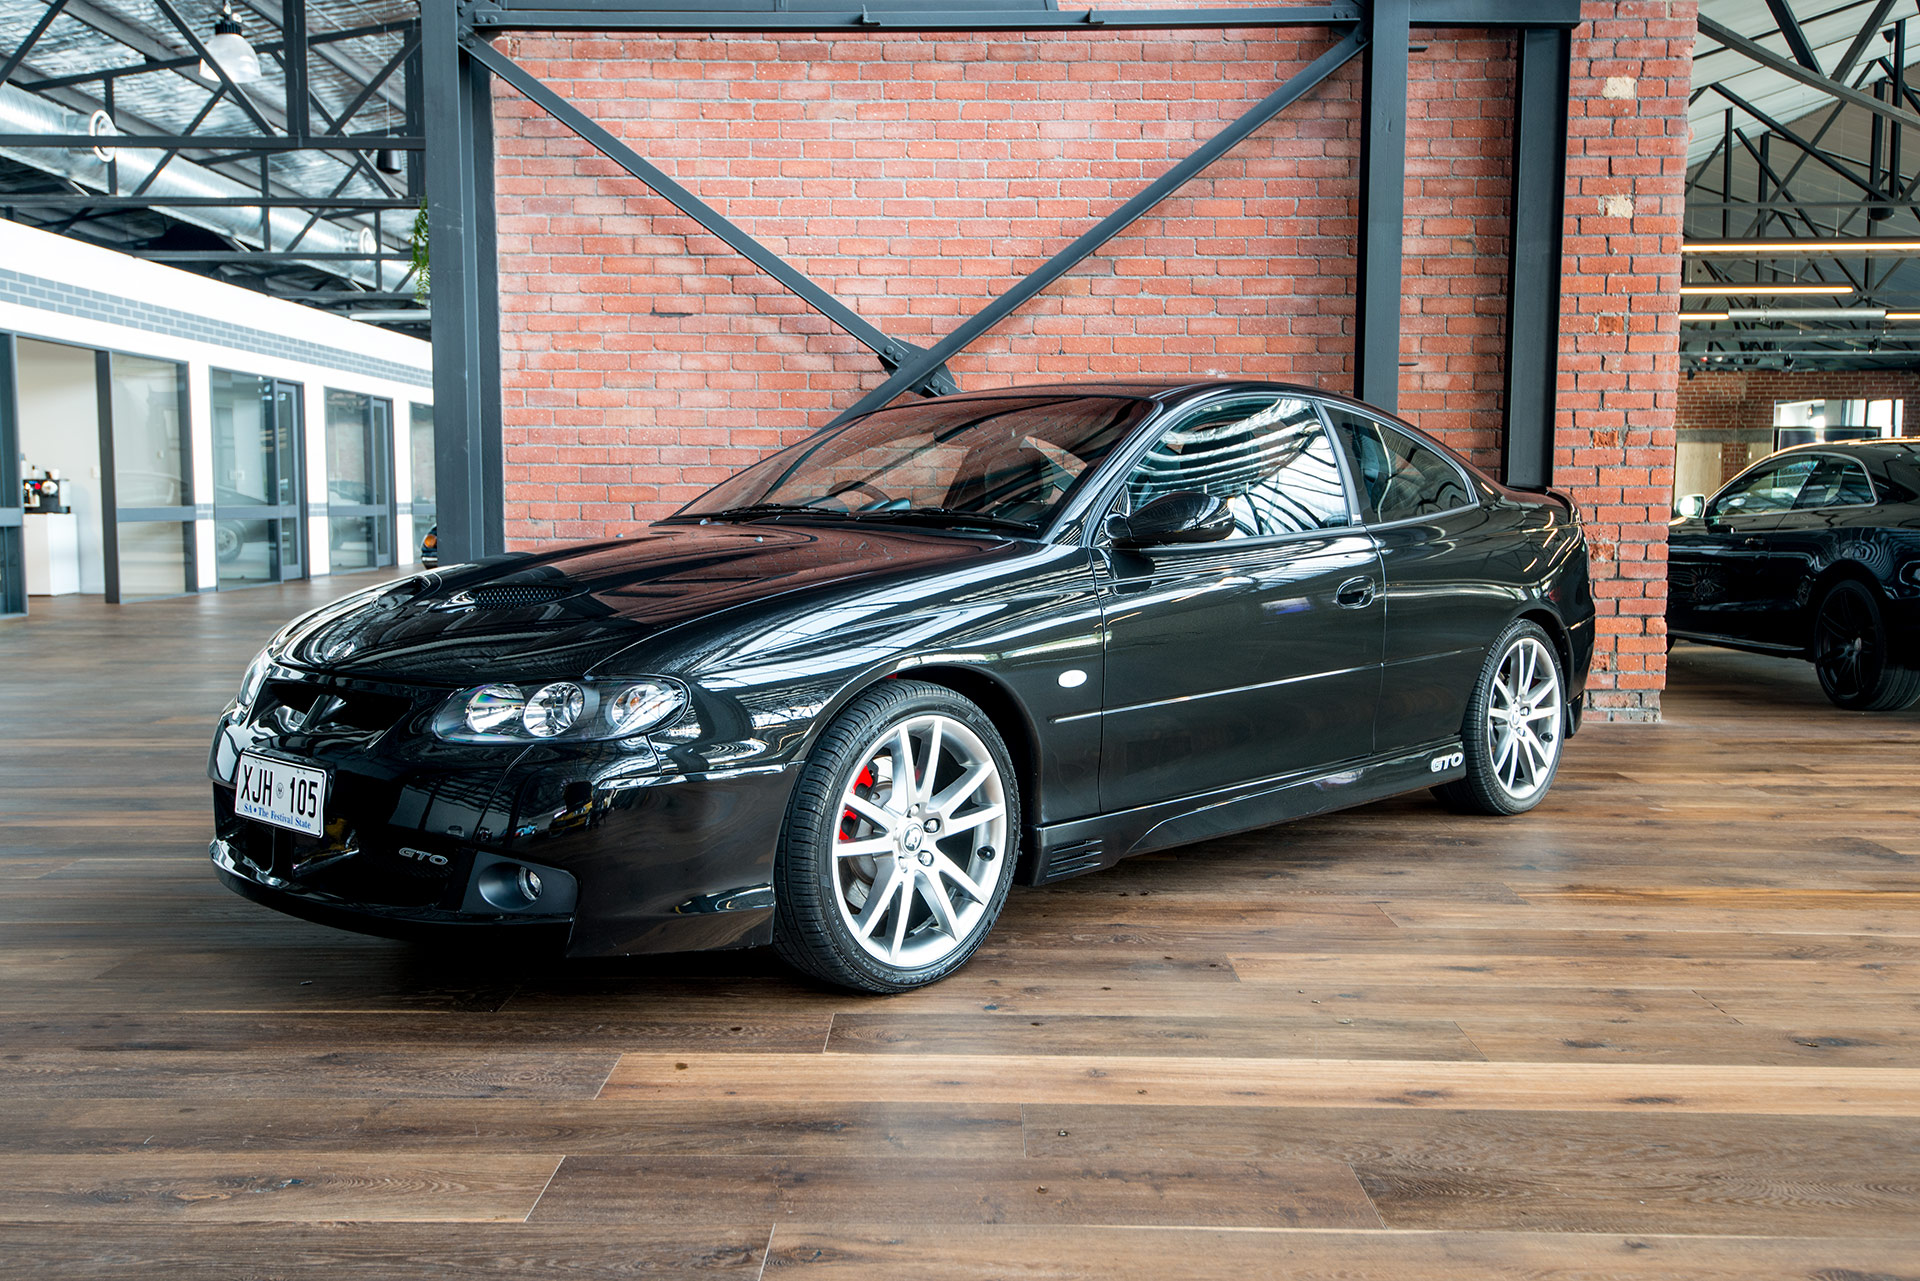 2006 HSV Coupe VZ GTO - Richmonds - Classic and Prestige Cars - Storage and Sales - Adelaide ...